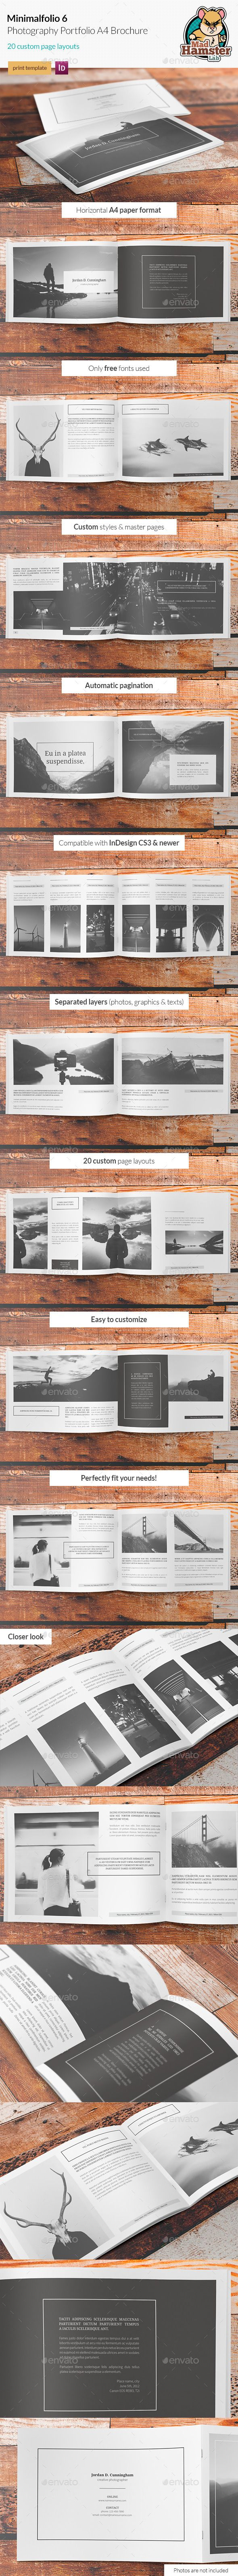 Minimalfolio 6 Photography Portfolio A4 Brochure Template InDesign INDD #design Download: http://graphicriver.net/item/minimalfolio-6-photography-portfolio-a4-brochure/13177981?ref=ksioks